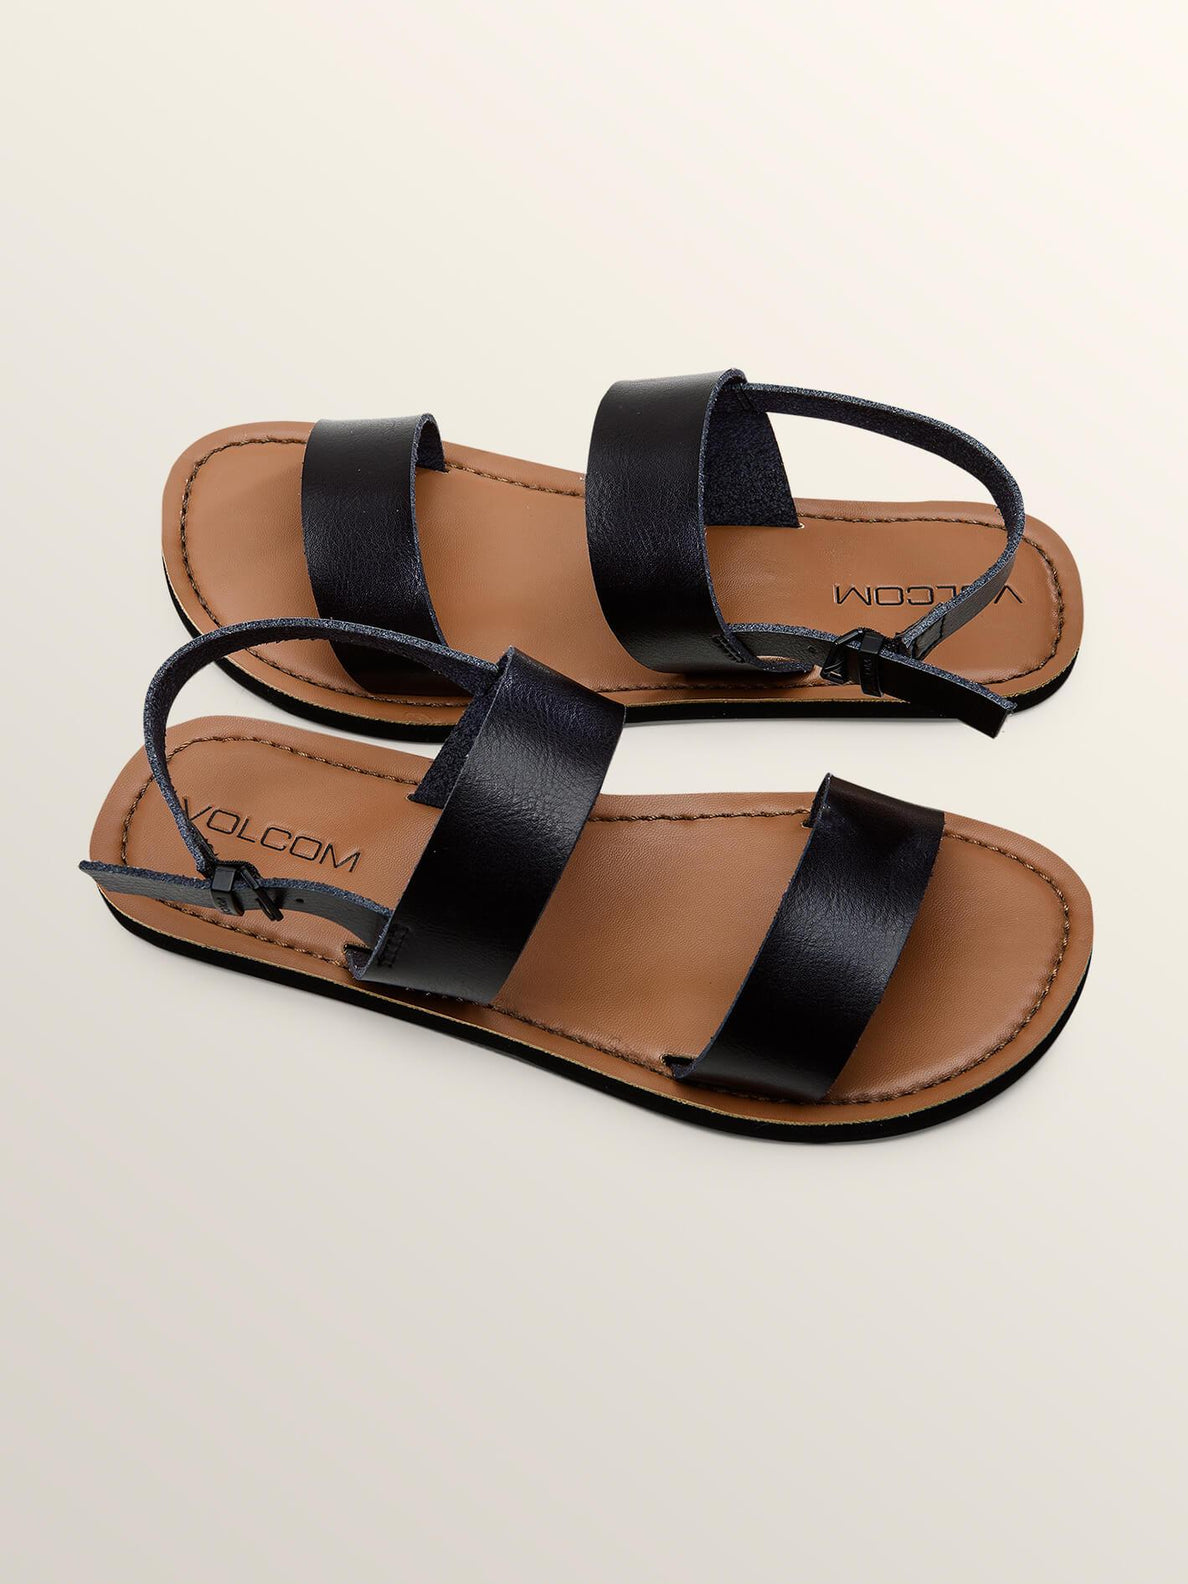 Stone Slide Sandals In Black, Front View